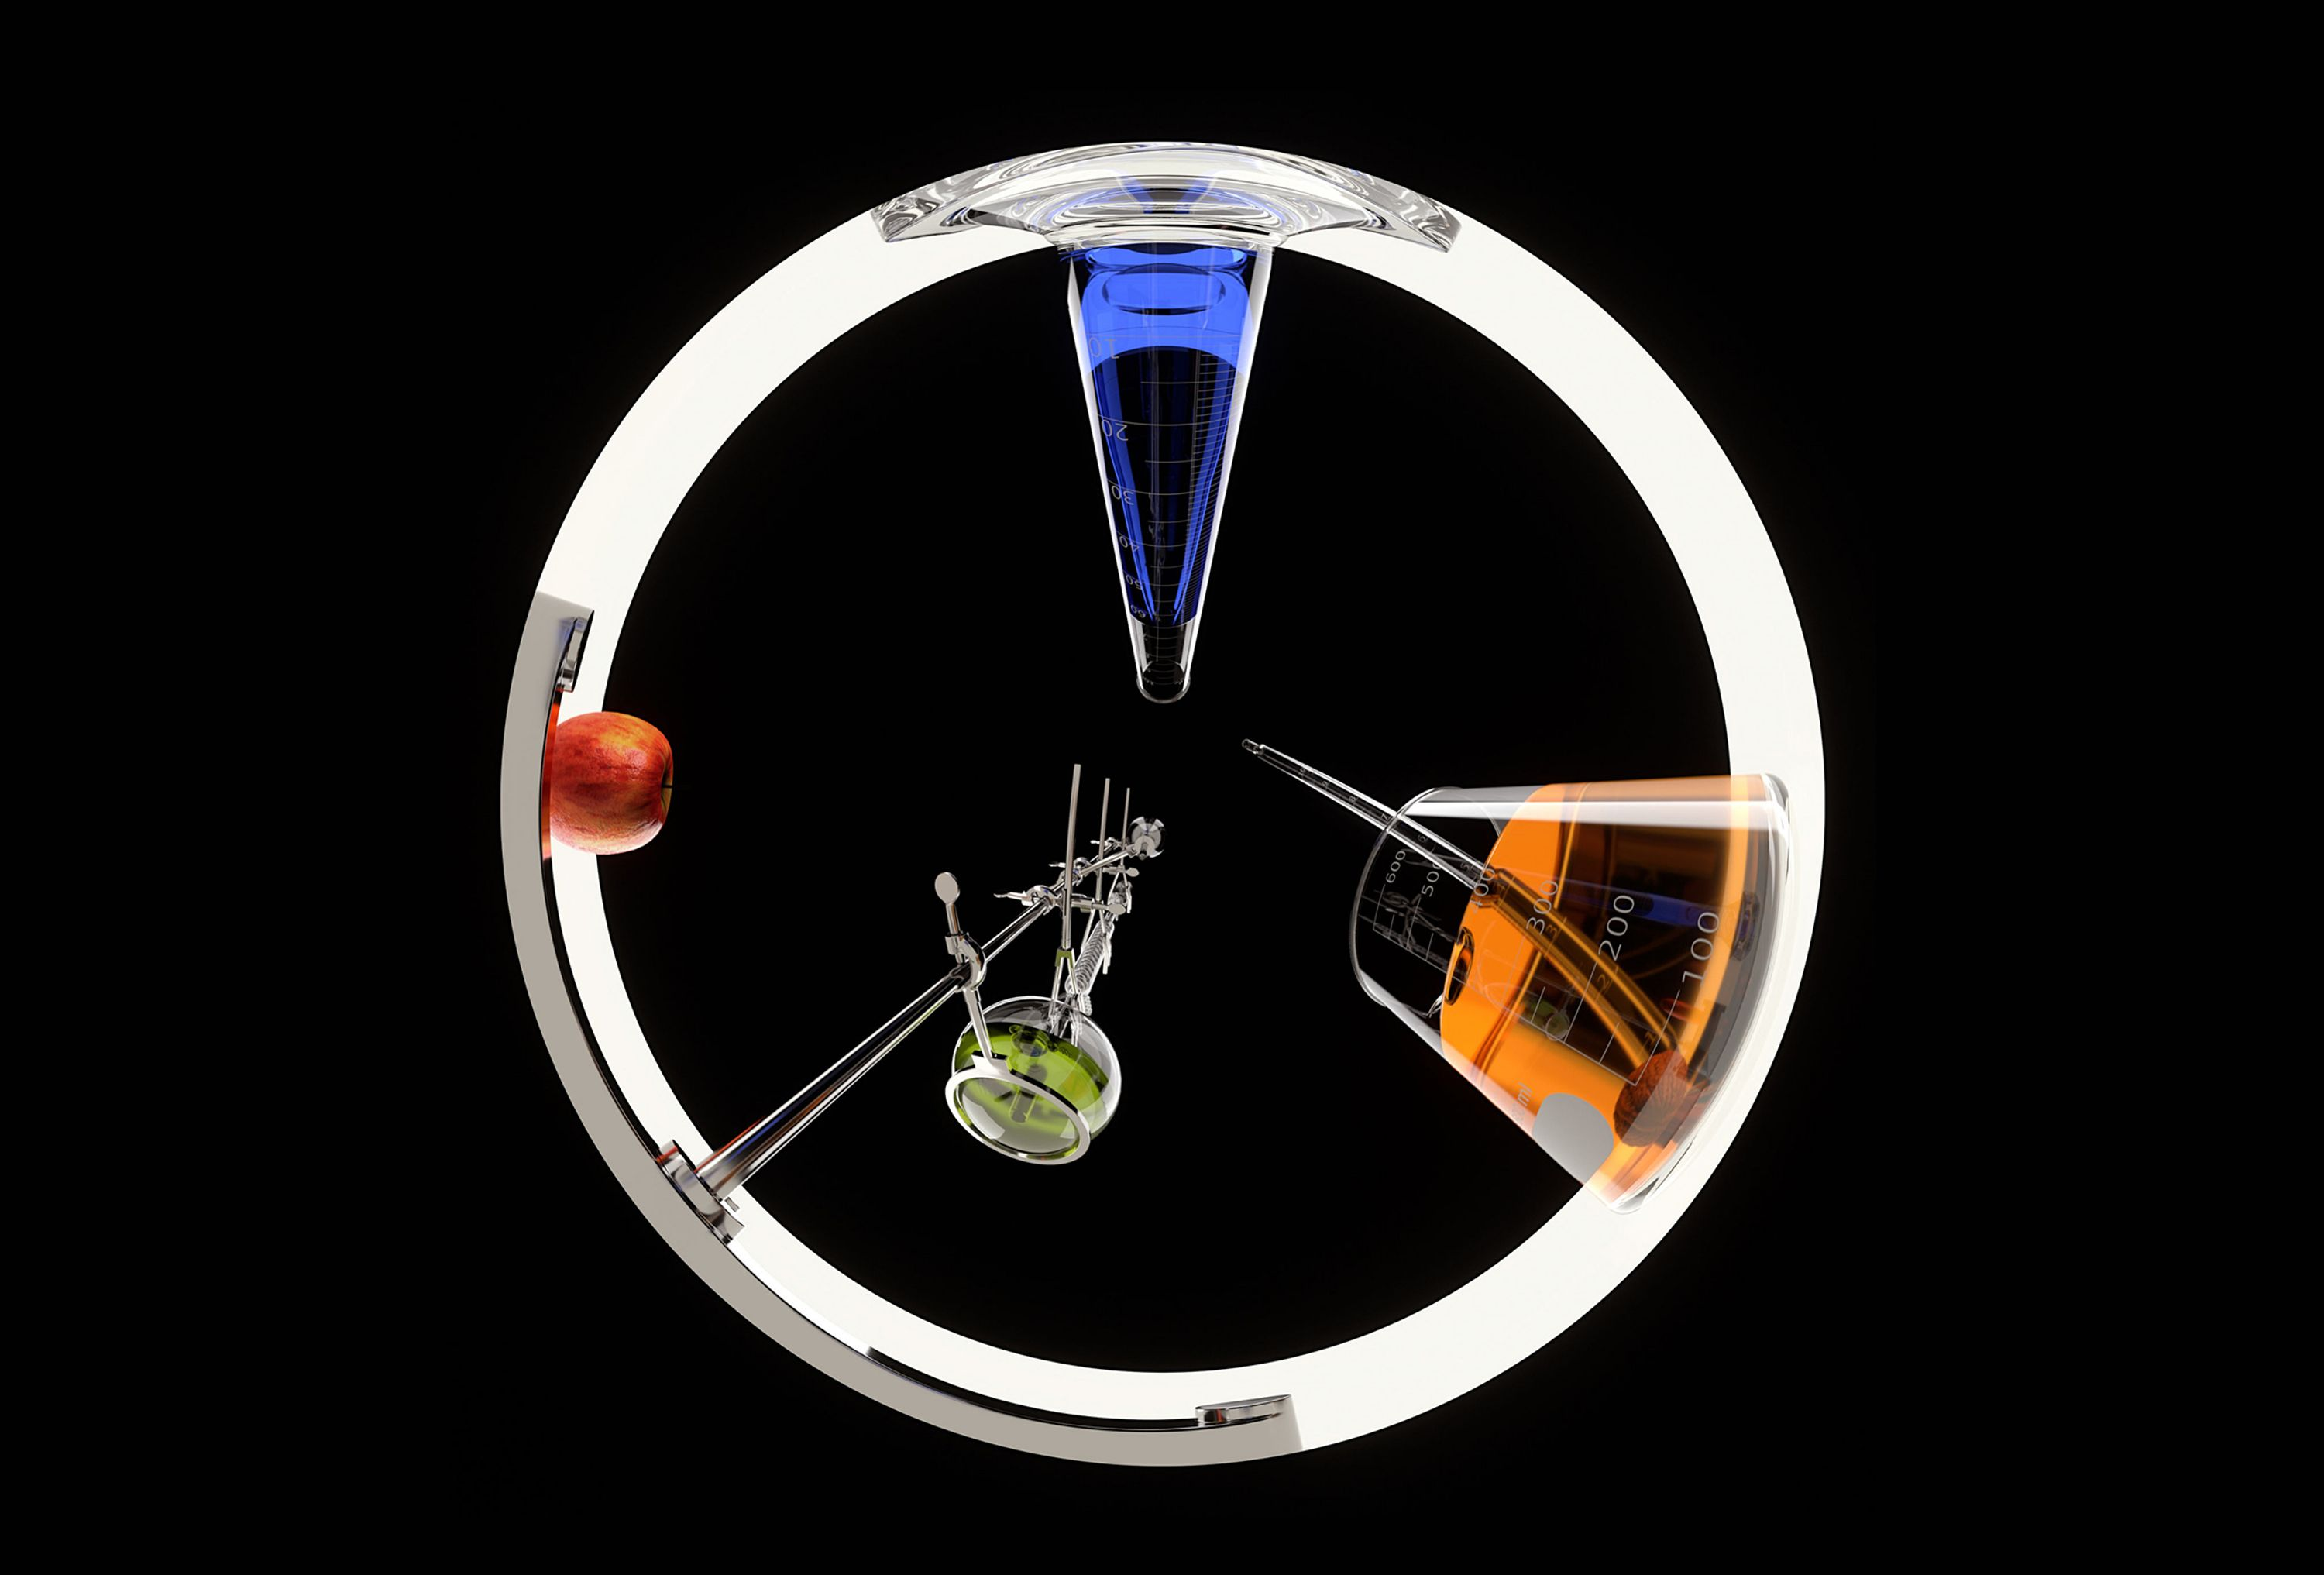 Wheel of lab supplies and an apple